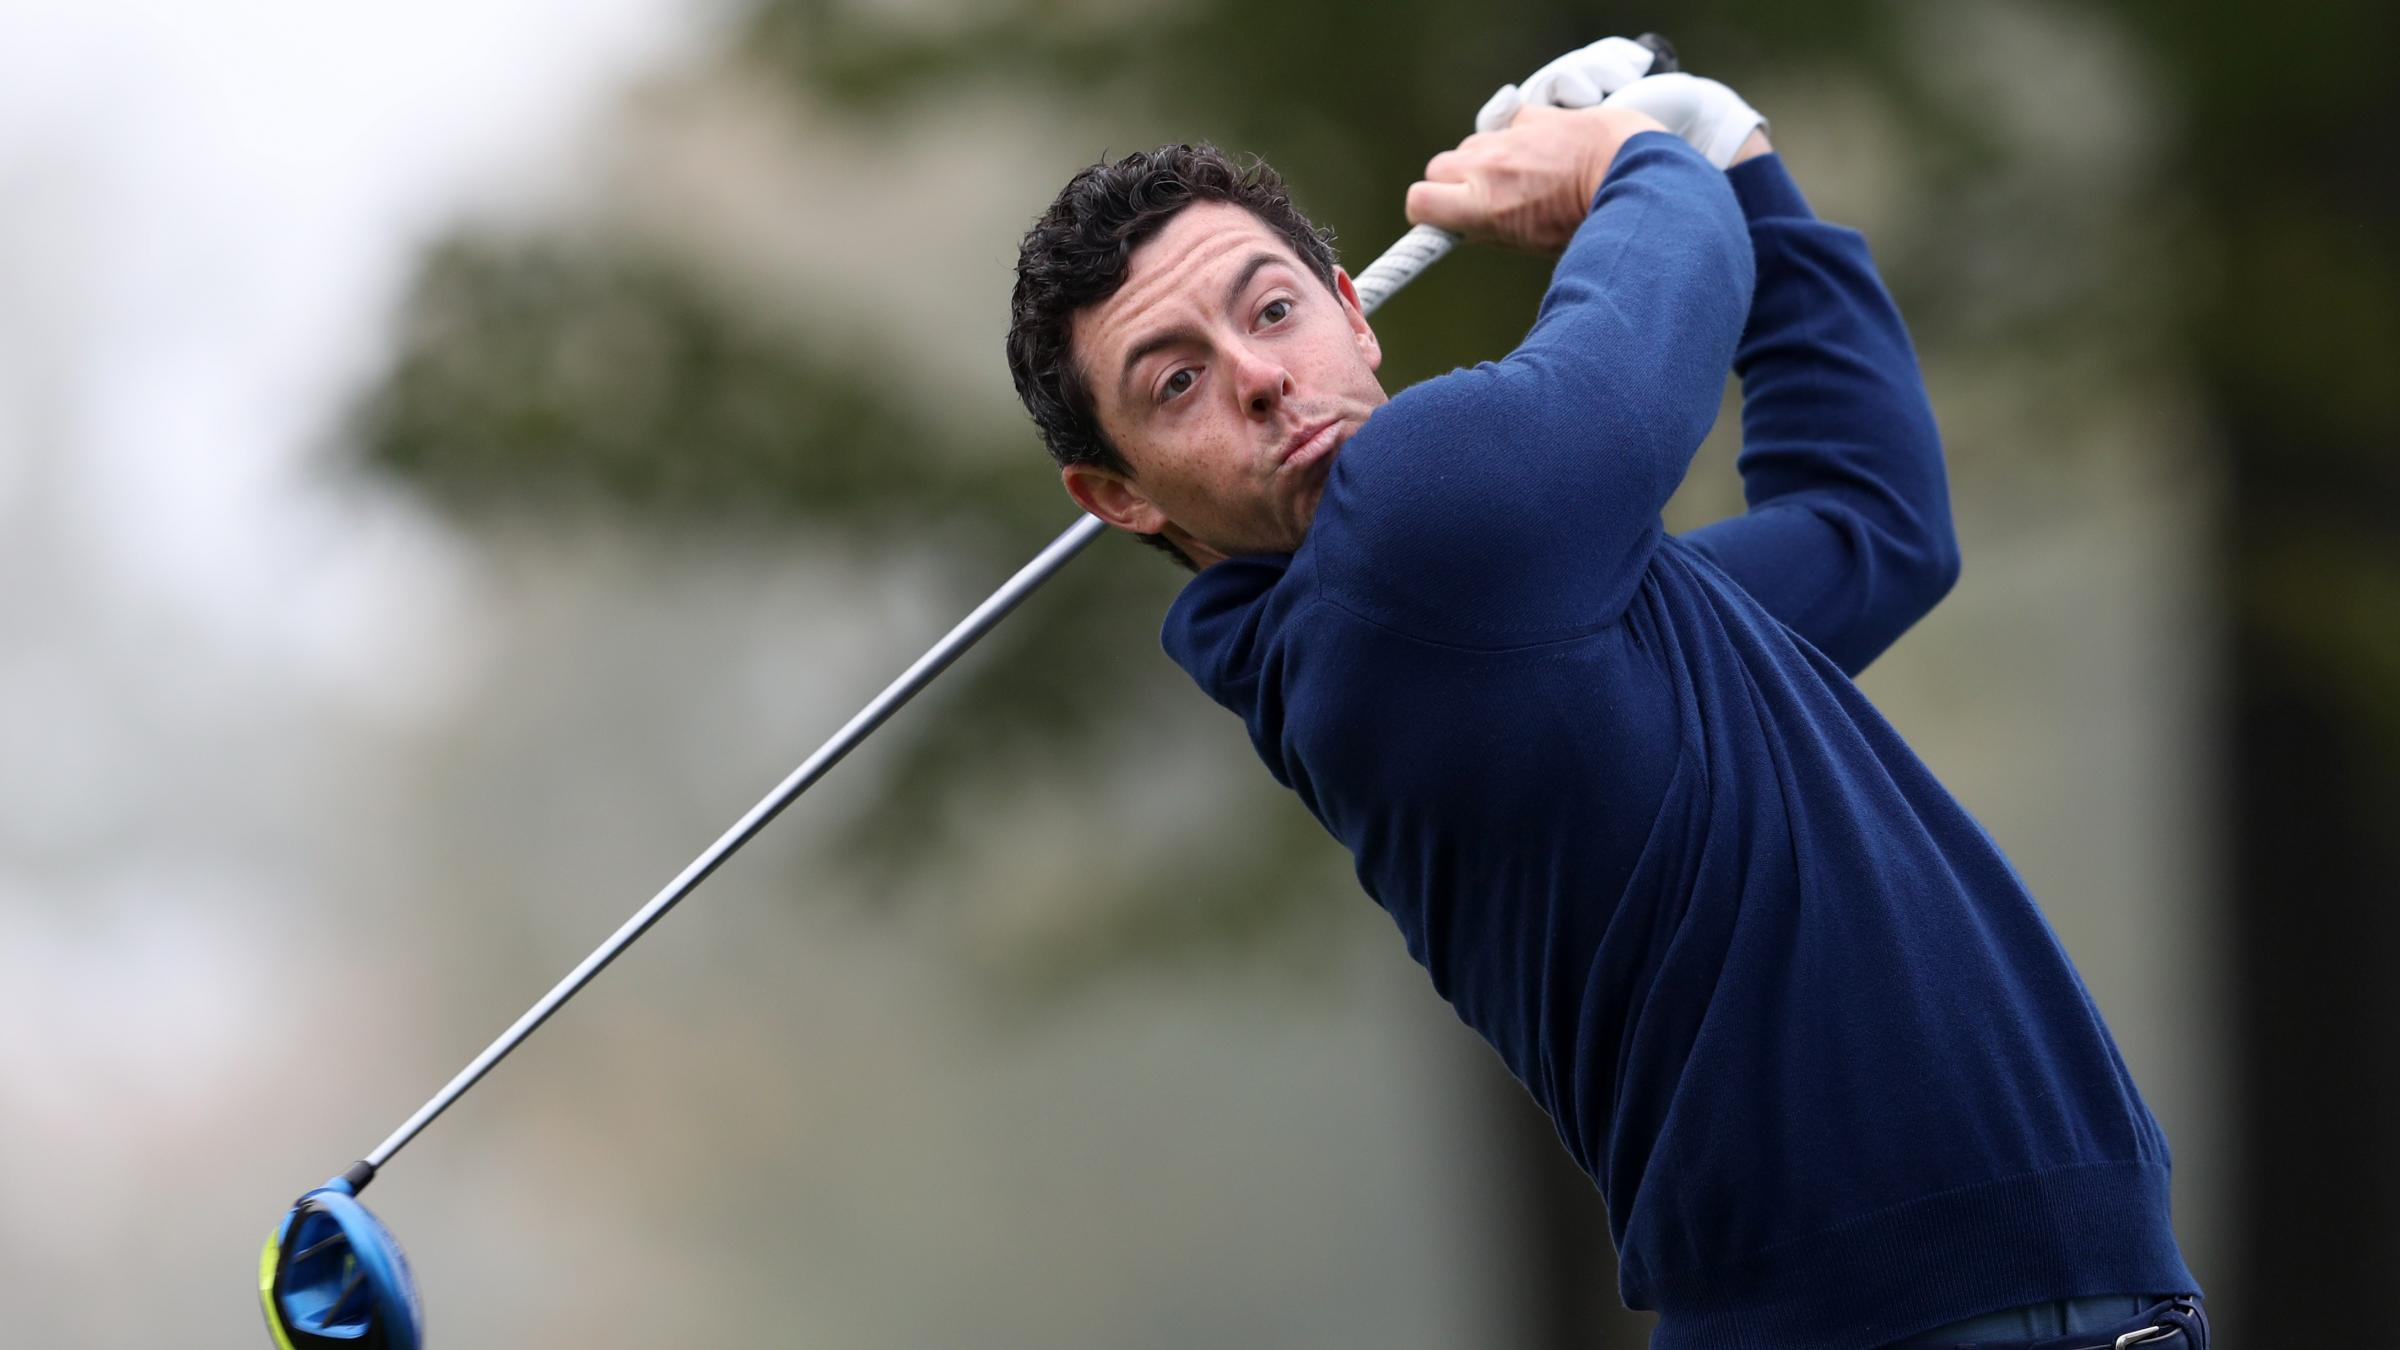 Rory McIlroy not pleased with changes to US Open course